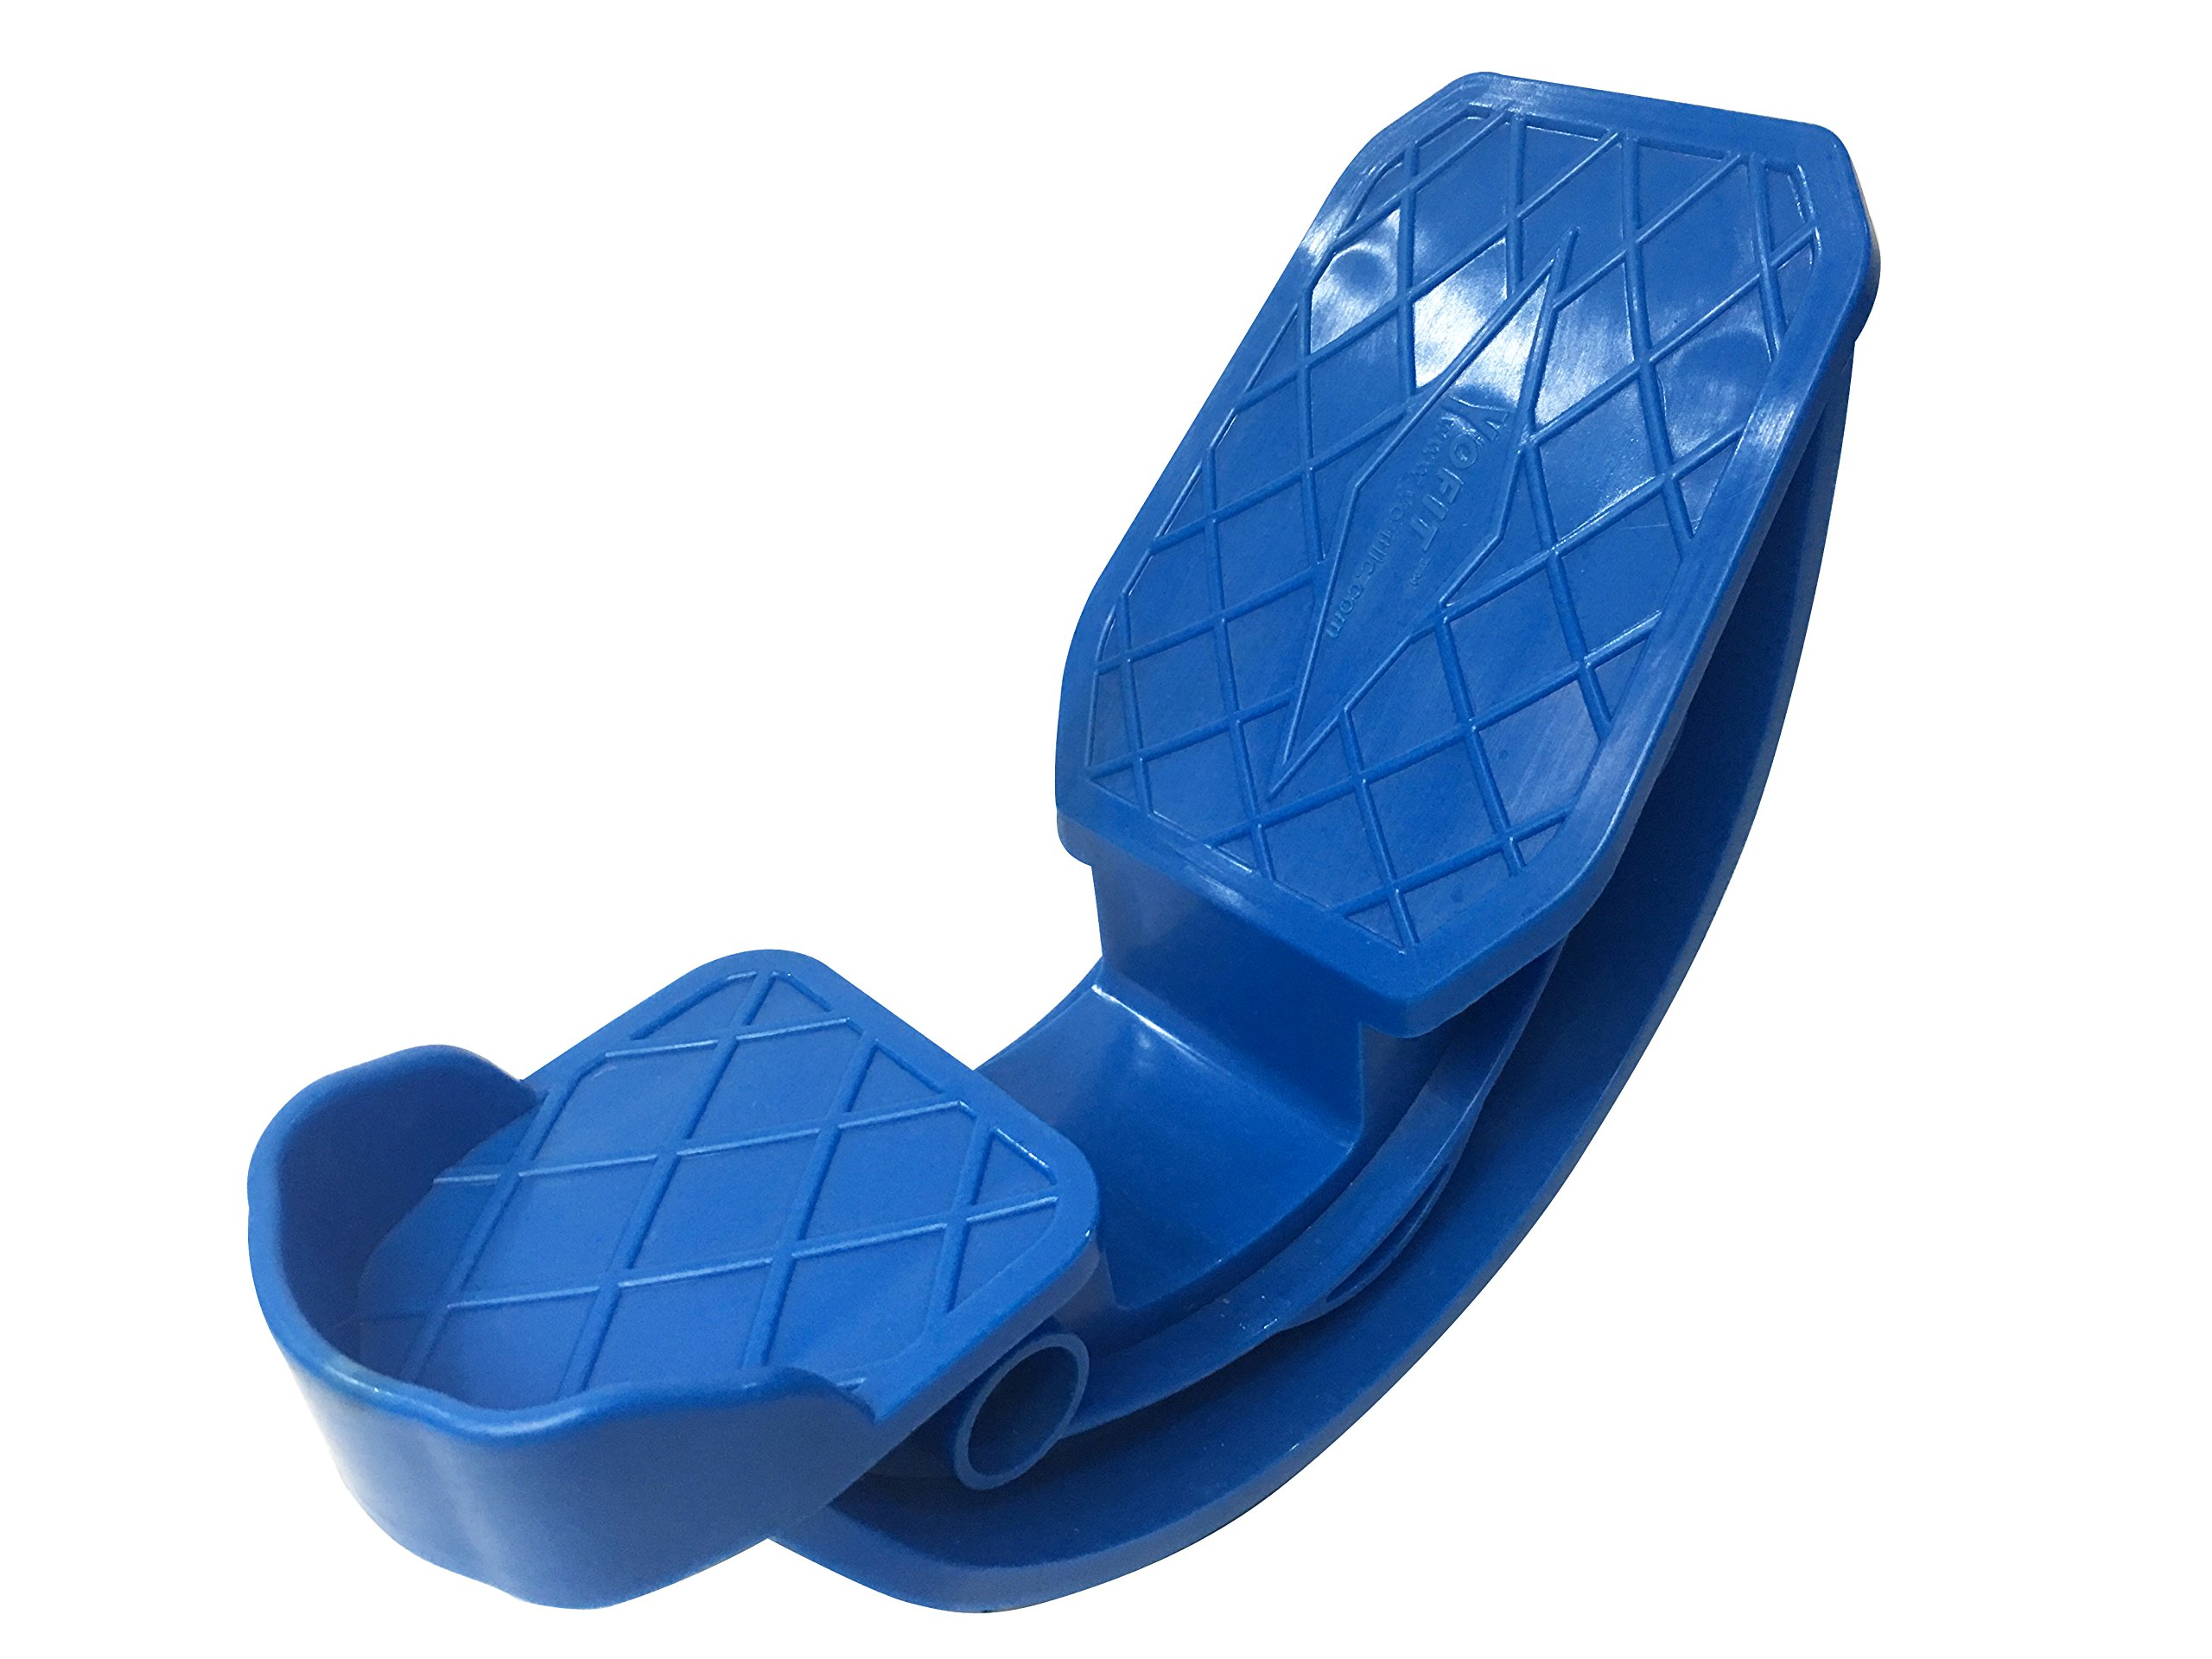 YOFIT Foot Stretcher, Foot Rocker (Navy)